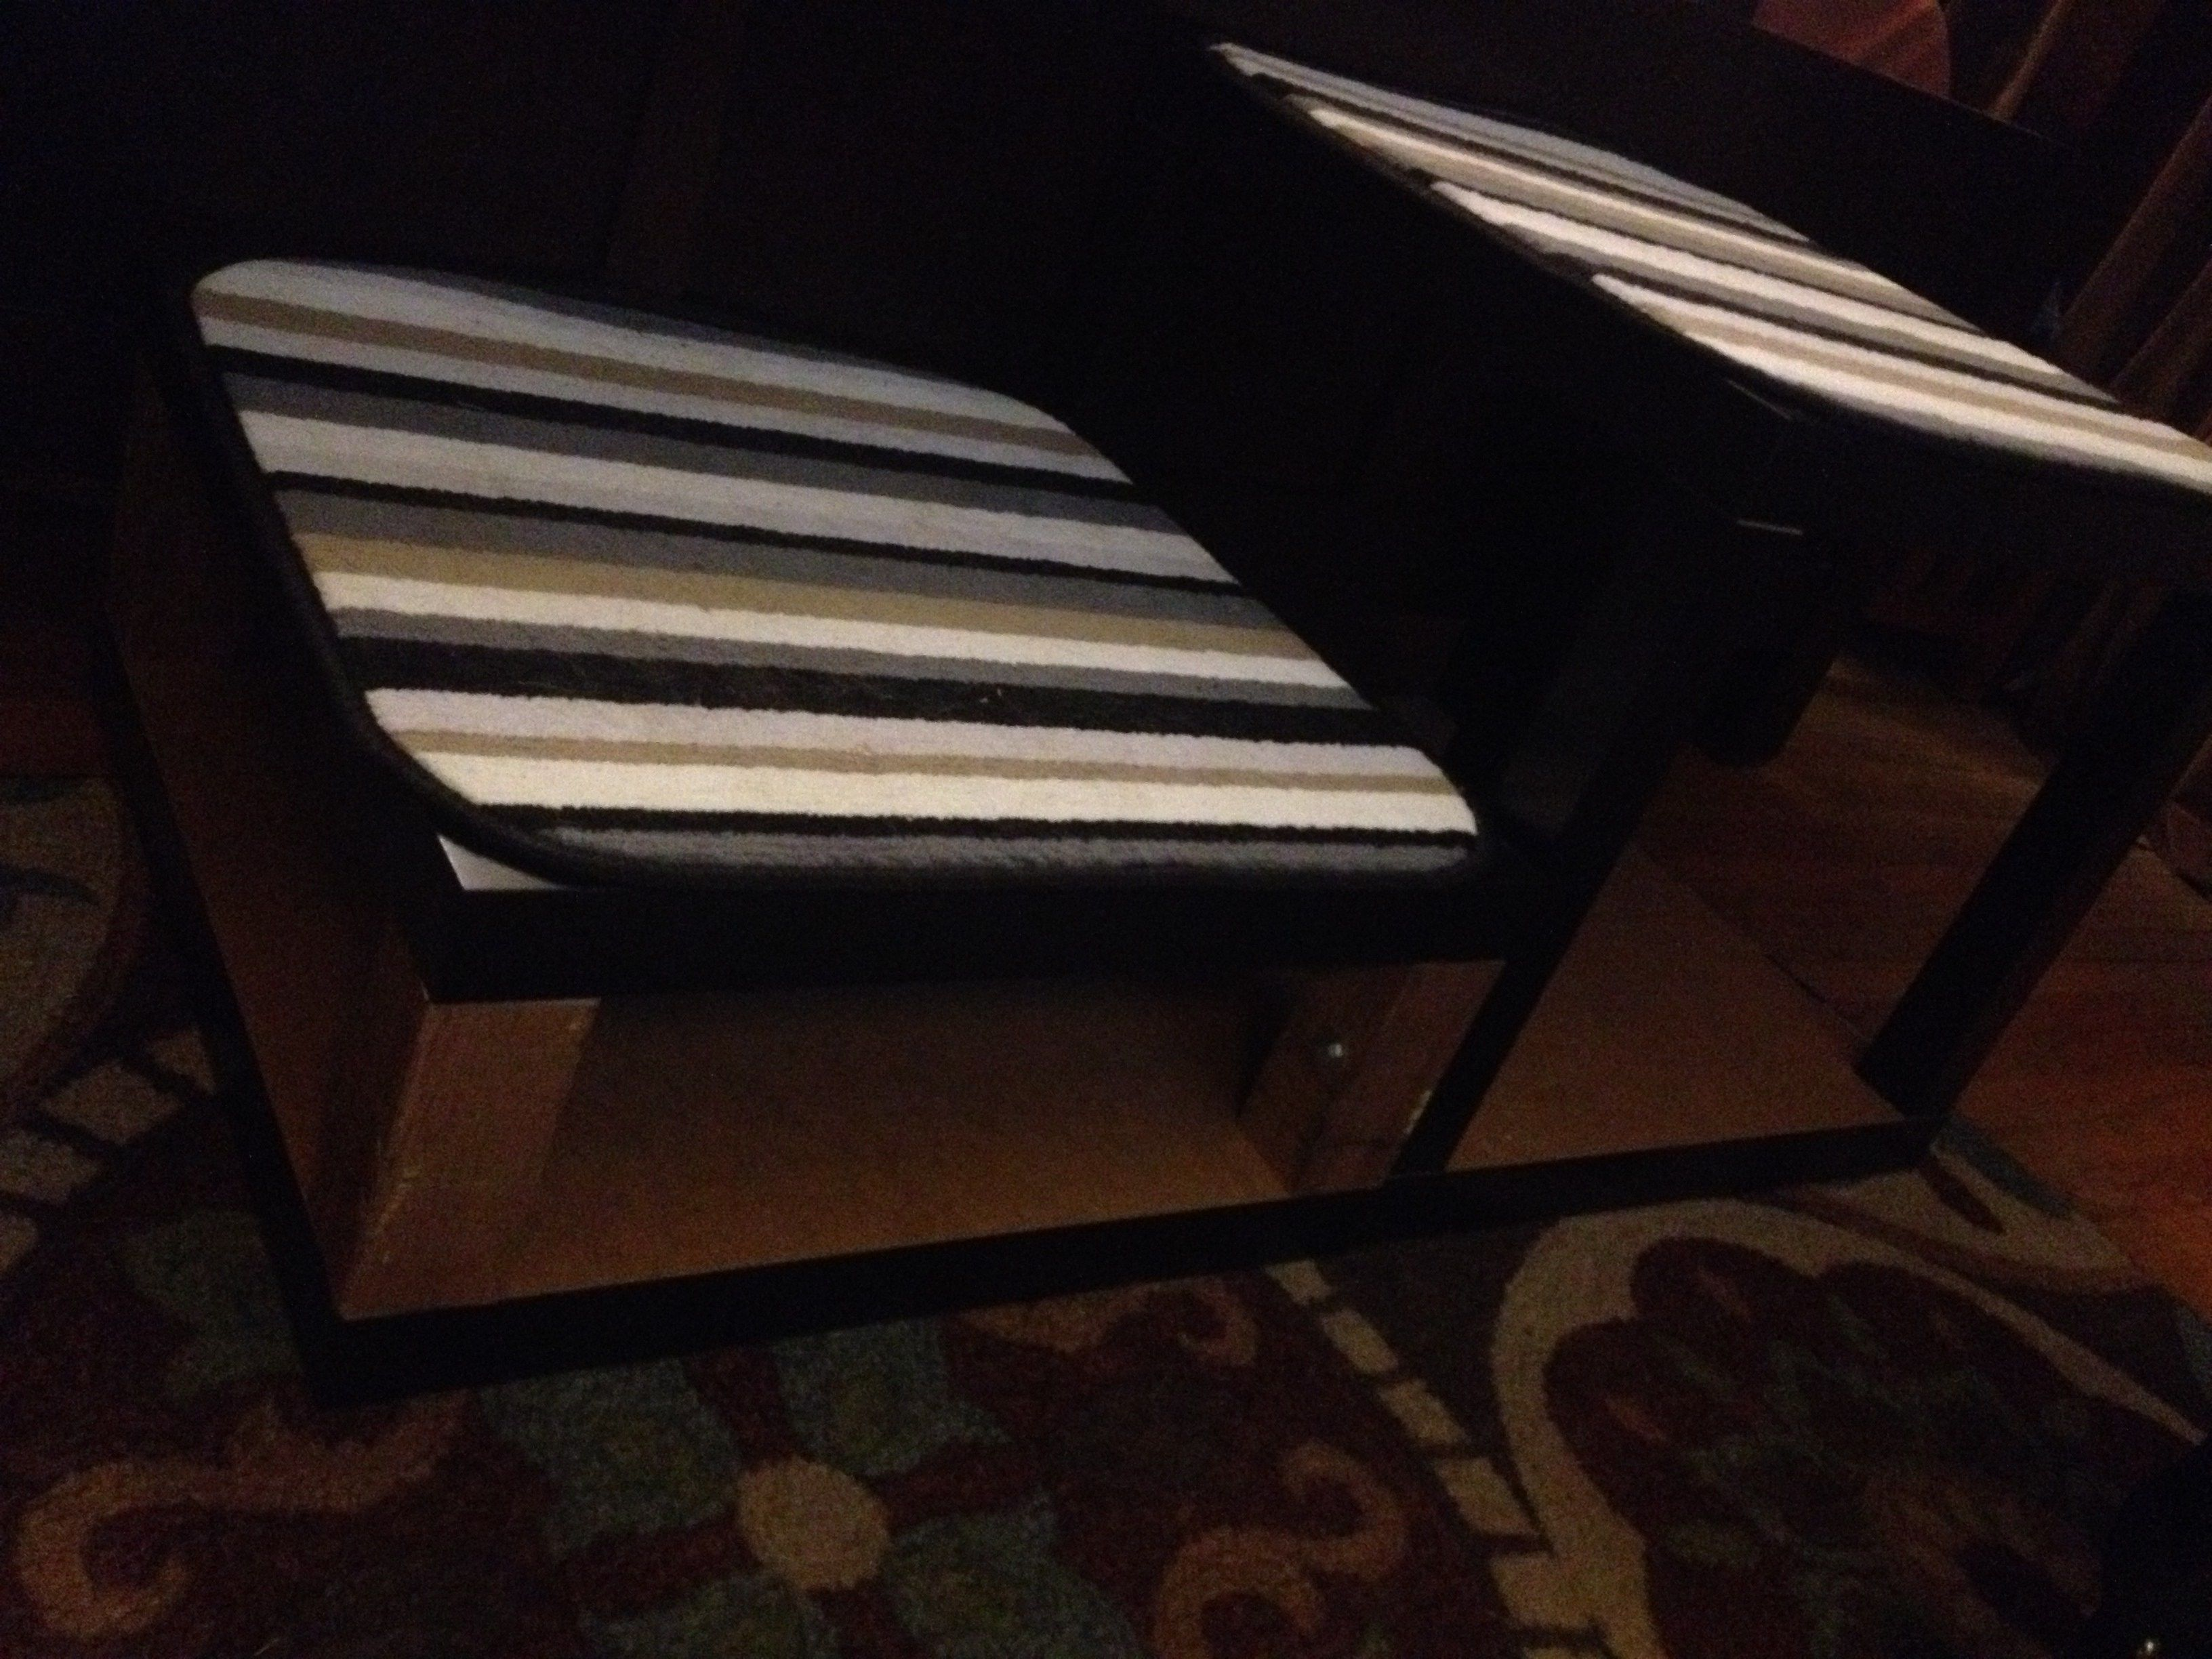 Hacking Cheap Ikea Tables Into Dog Stairs. Via GeekDad